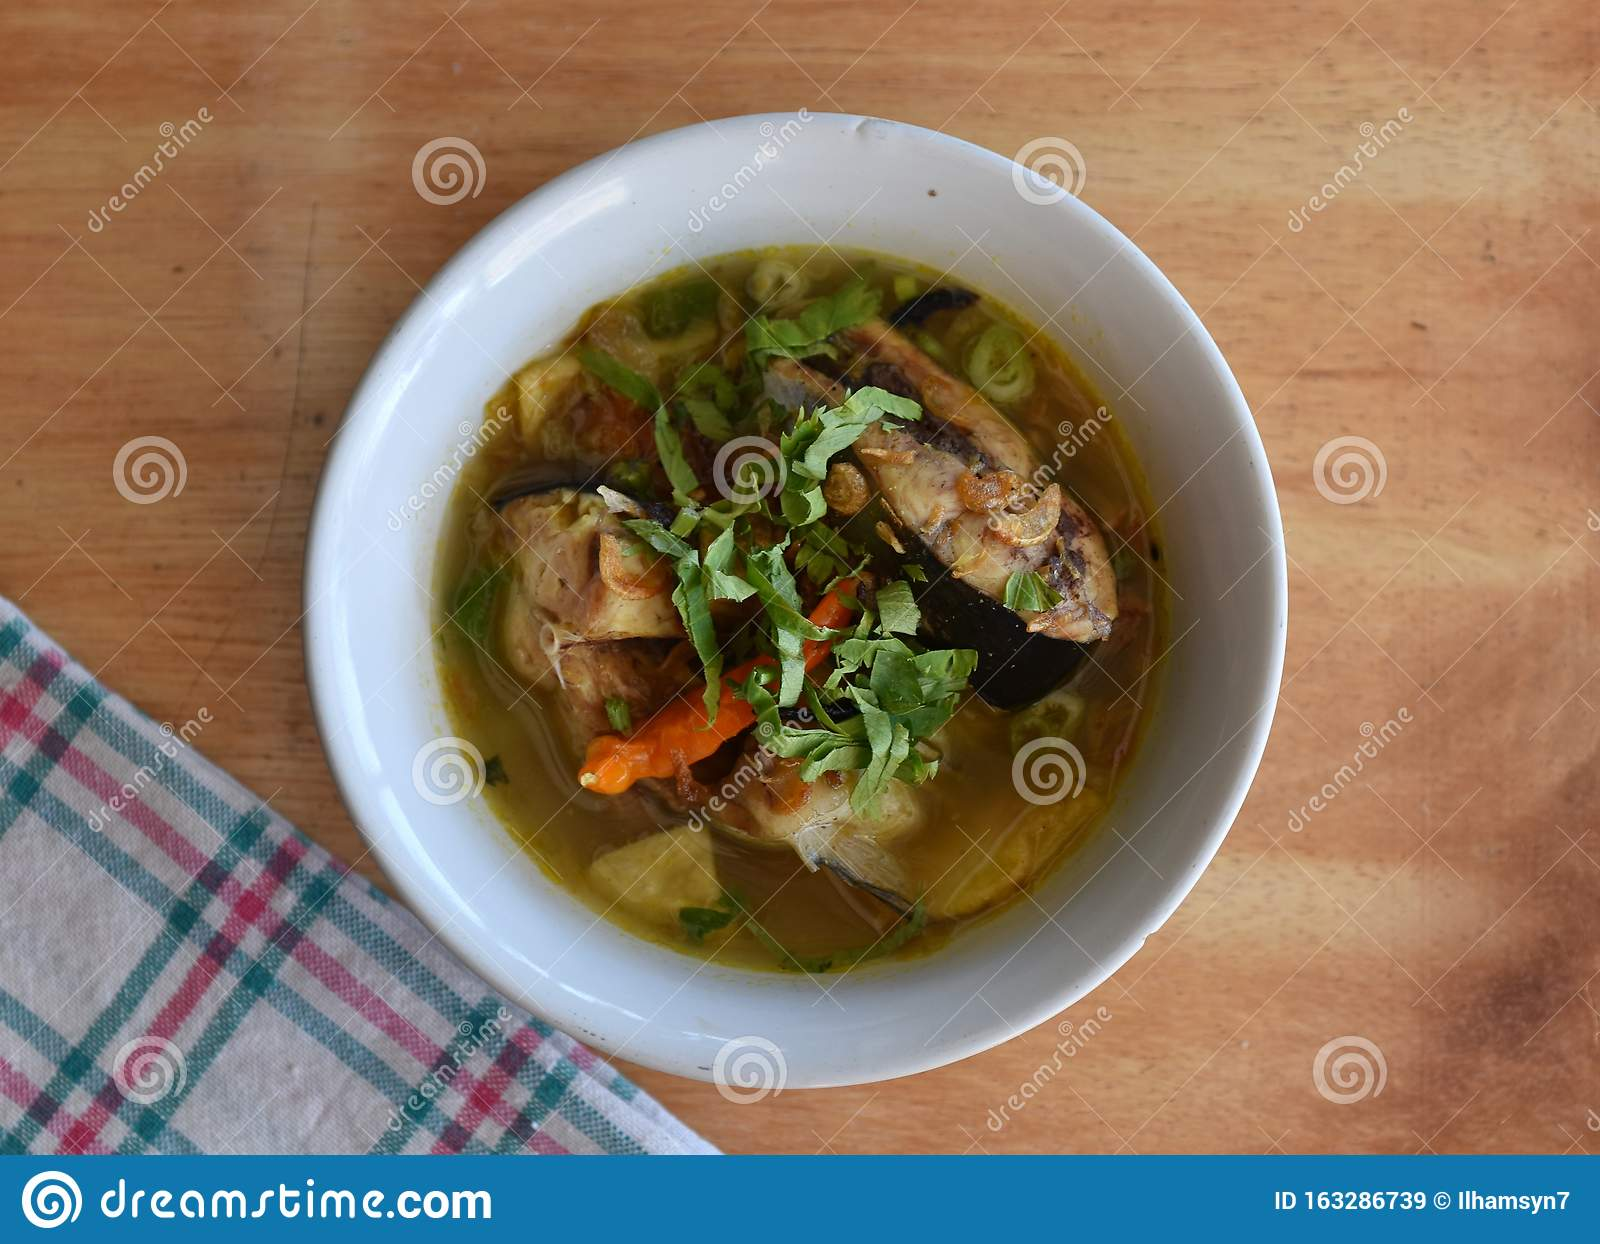 Catfish Soup Or Sup Ikan Patin Is Indonesian Traditional Food Stock Image Image Of Health Diet 163286739